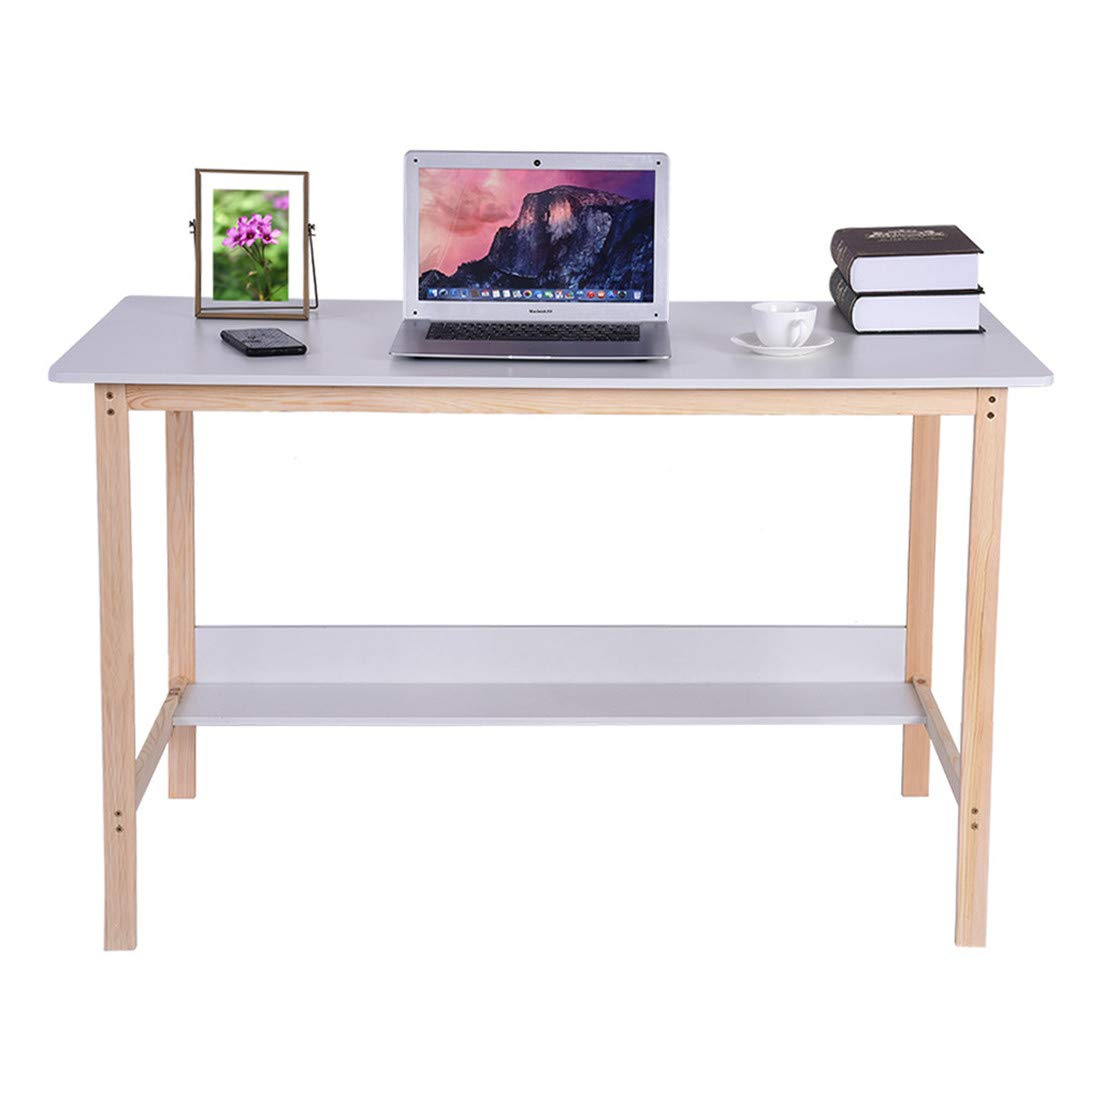 Simple Computer Desk Multi-Purpose Table Large-Capacity Storage Modern Home Bedroom Solid Wood Table,Shipped from The US (White, 120×60×74cm) by Freeby-US